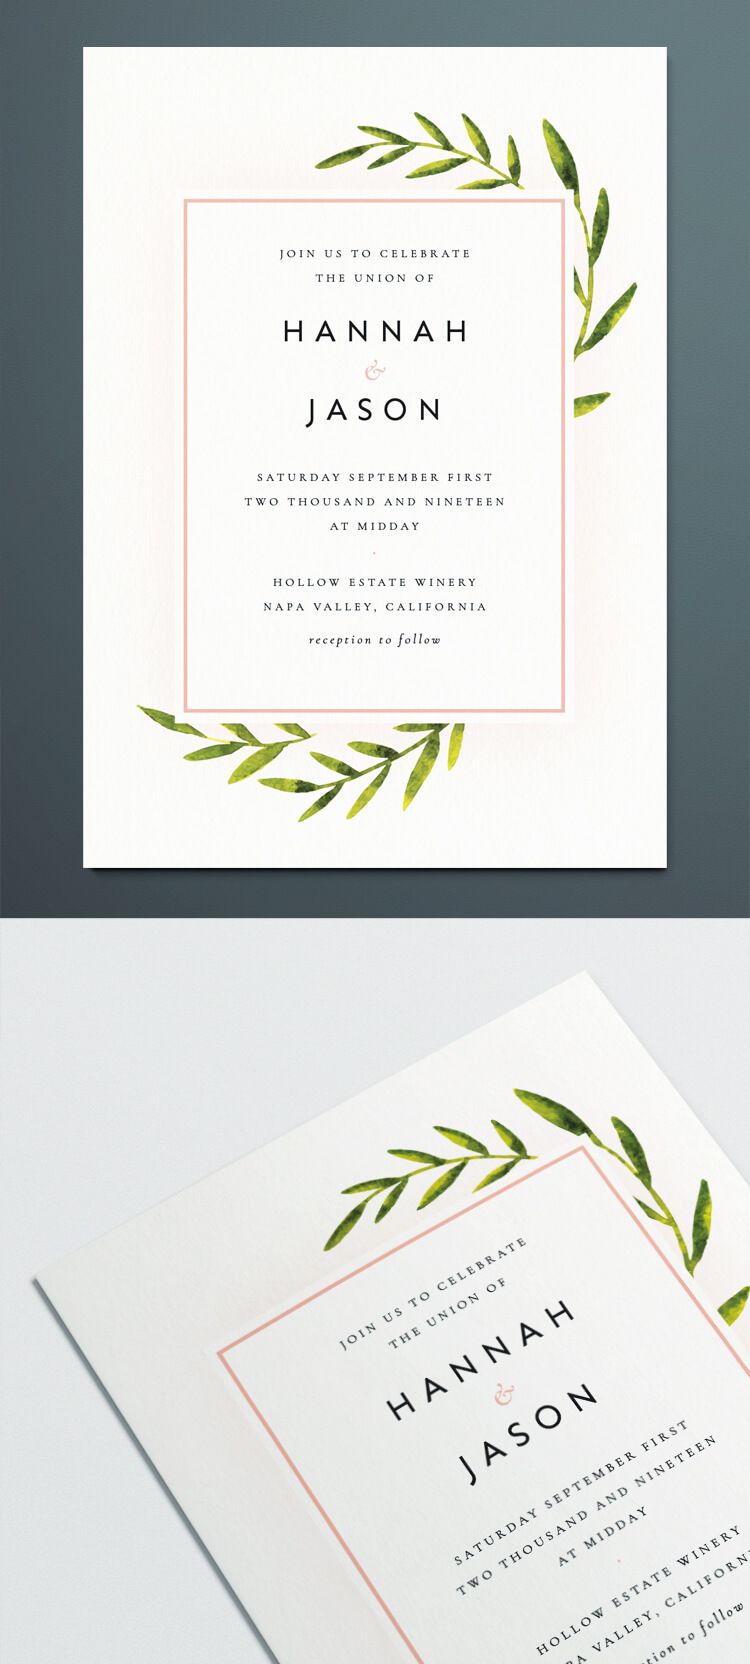 Indesign Wedding Invitation Template With Botanical Vintage Ilration Free Able Design For Diy Invite